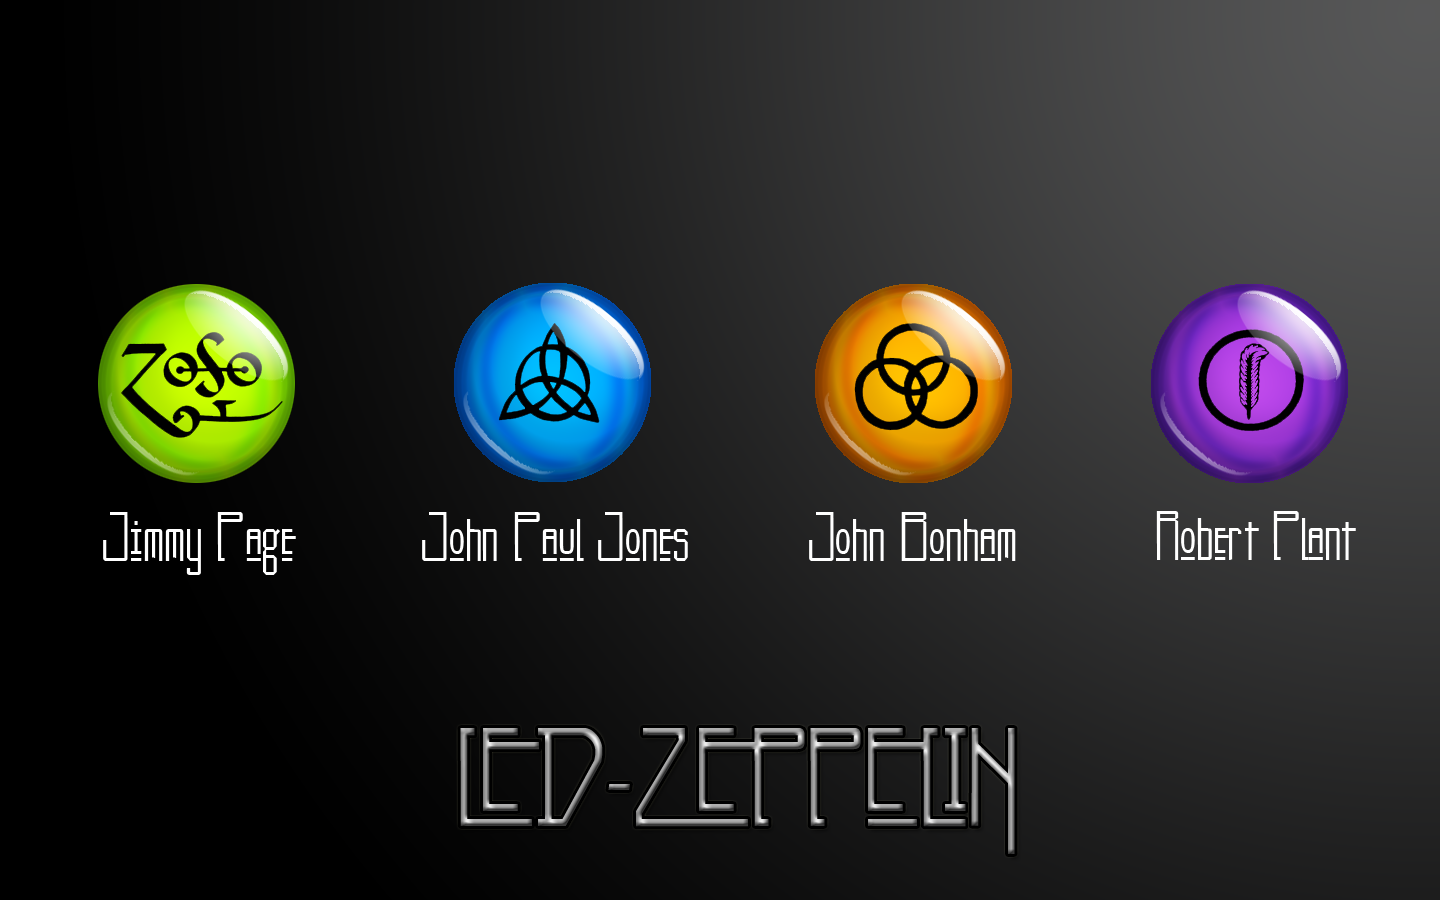 Led Zeppelin Band Members Personally Chosen Symbols From Left To